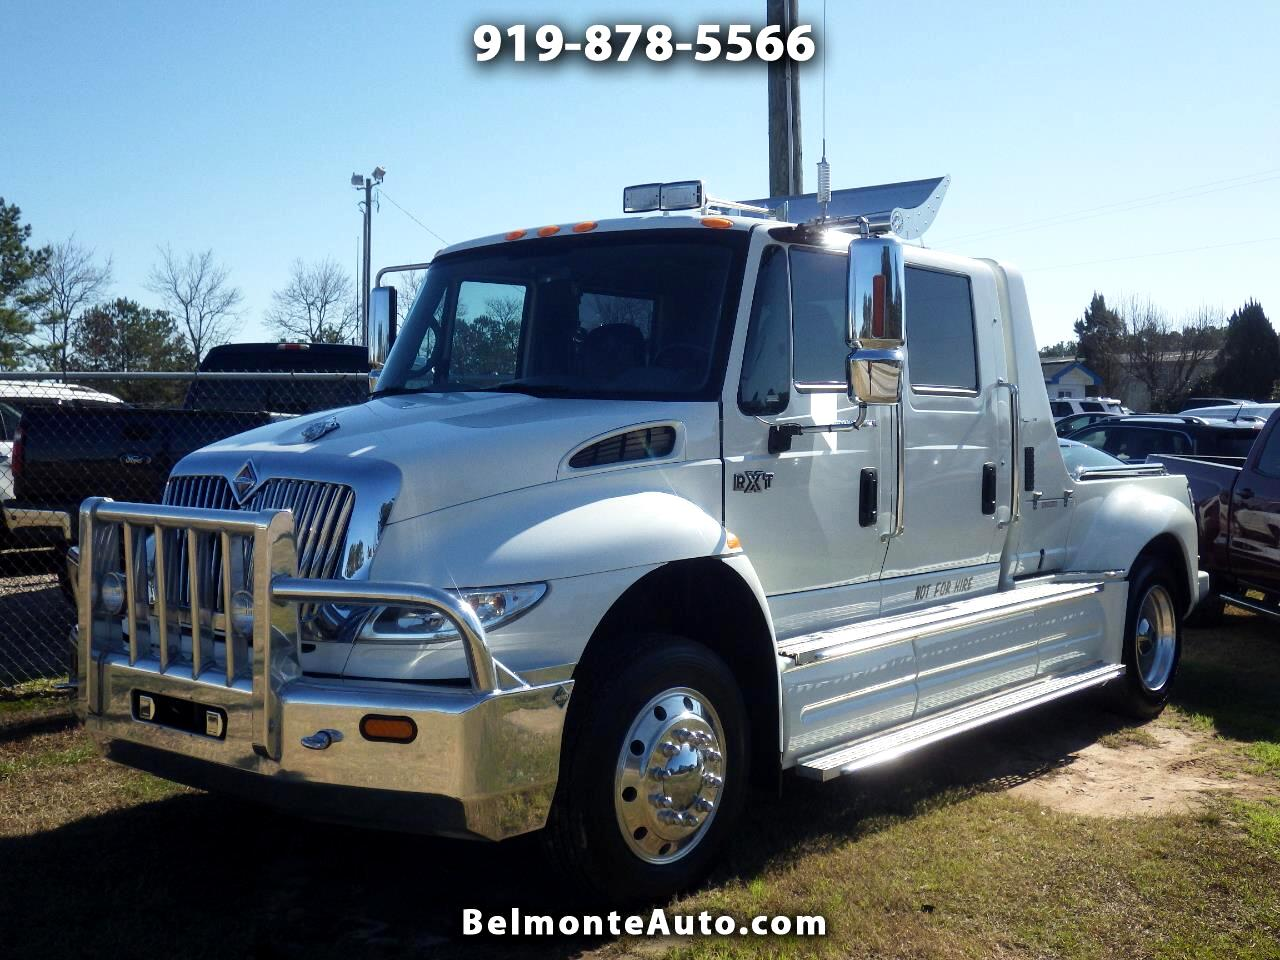 2008 International 4100 RXT